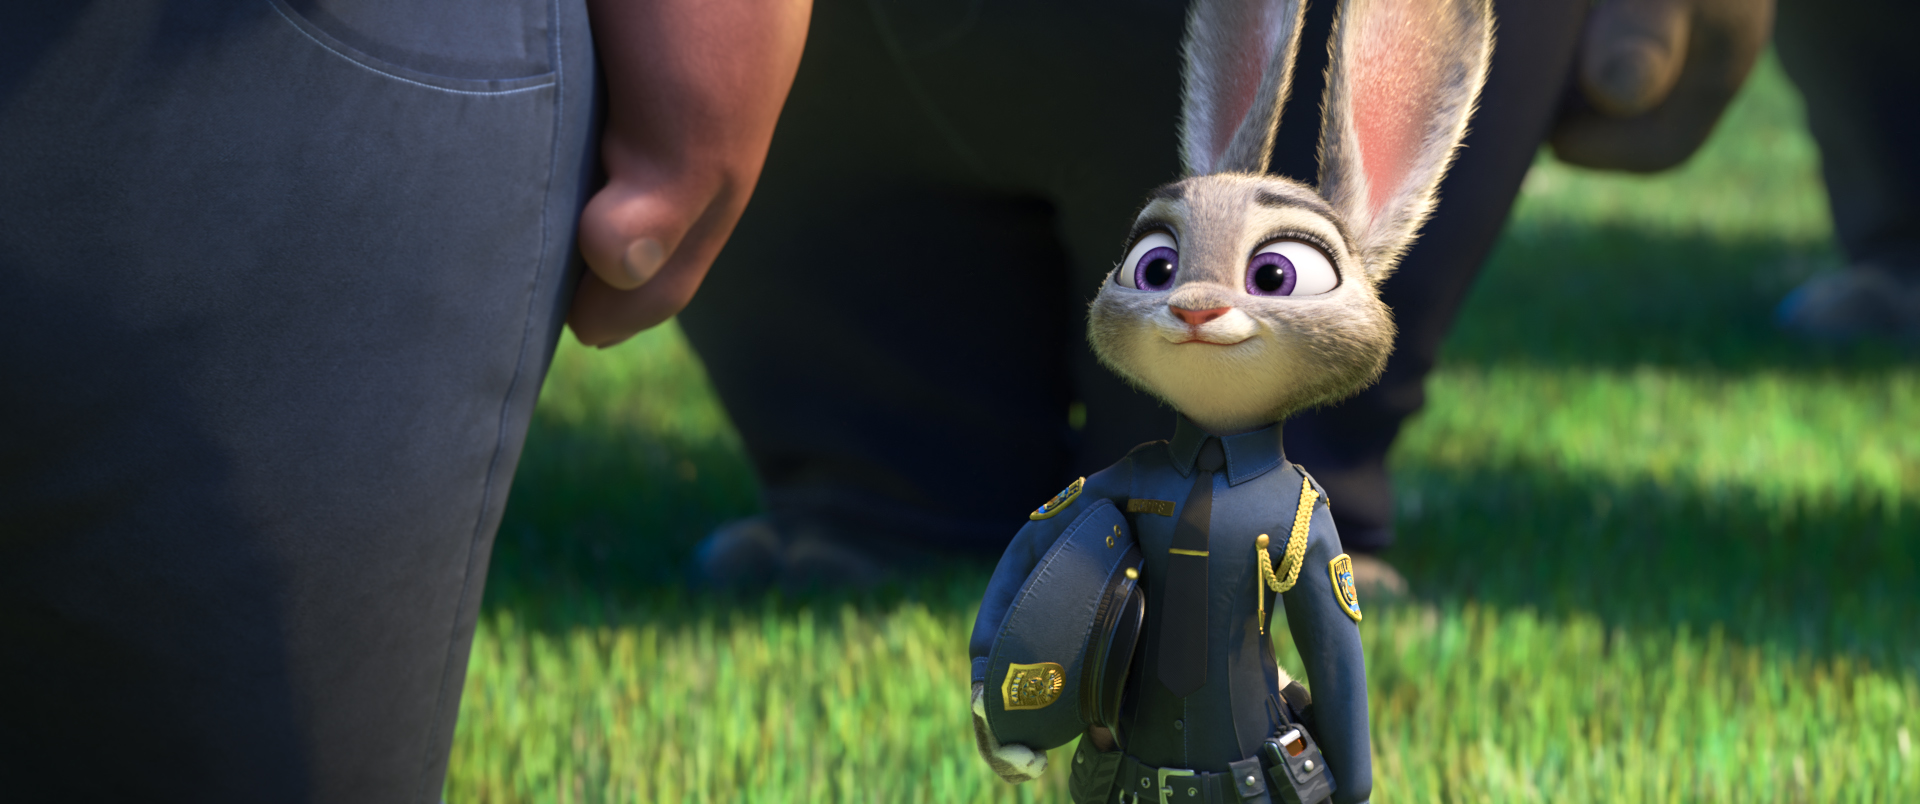 Judy Hopps. Zootopia. Photo courtesy of Disney.